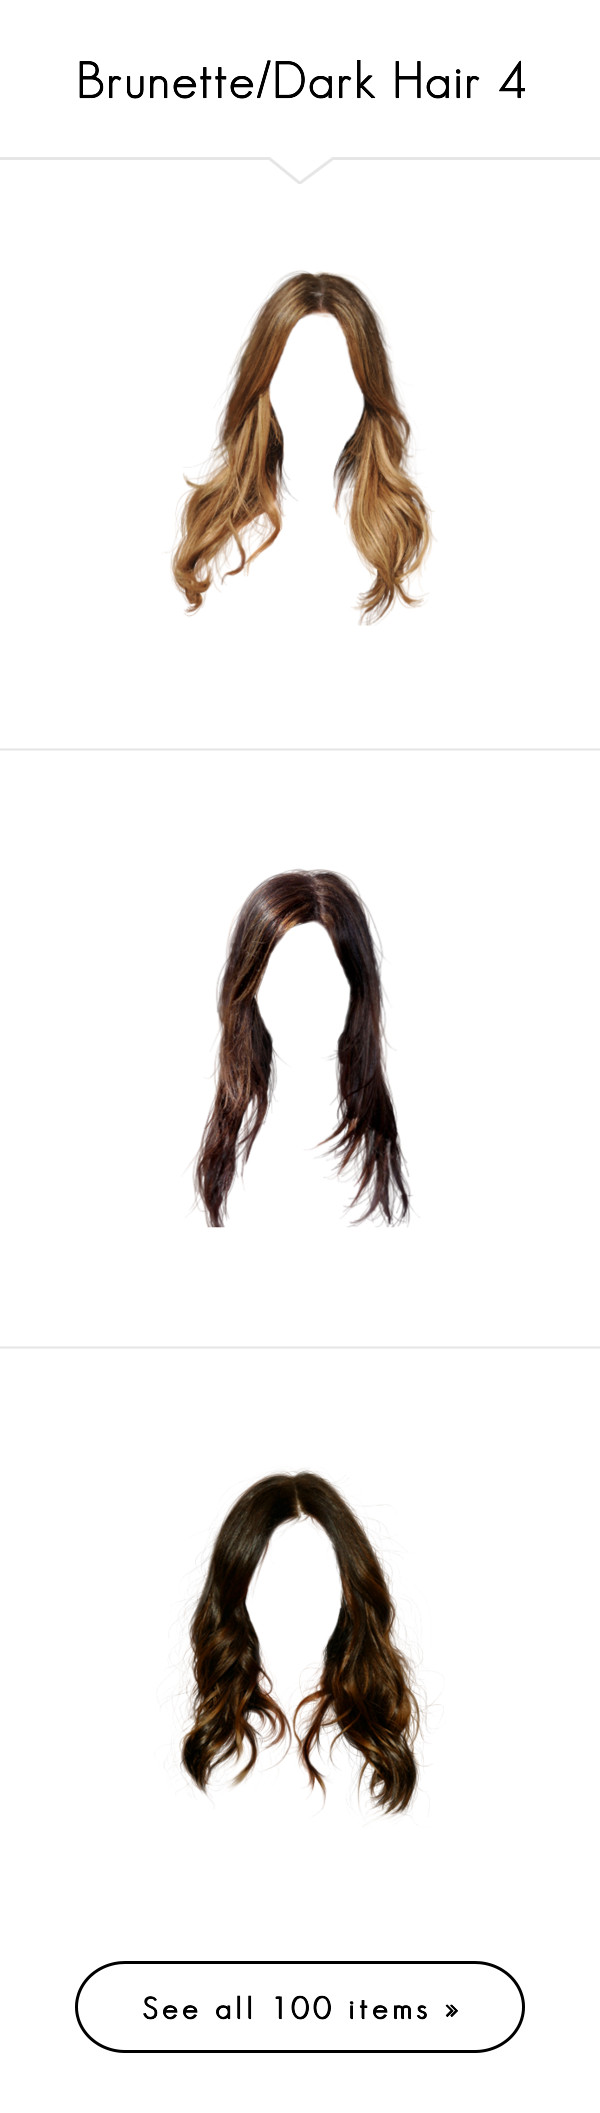 """""""Brunette/Dark Hair 4"""" by ana-banana ❤ liked on Polyvore featuring hair, doll parts, doll hair, dolls, hairstyles, hair styles, filler, cabelo, cabelos and wigs"""